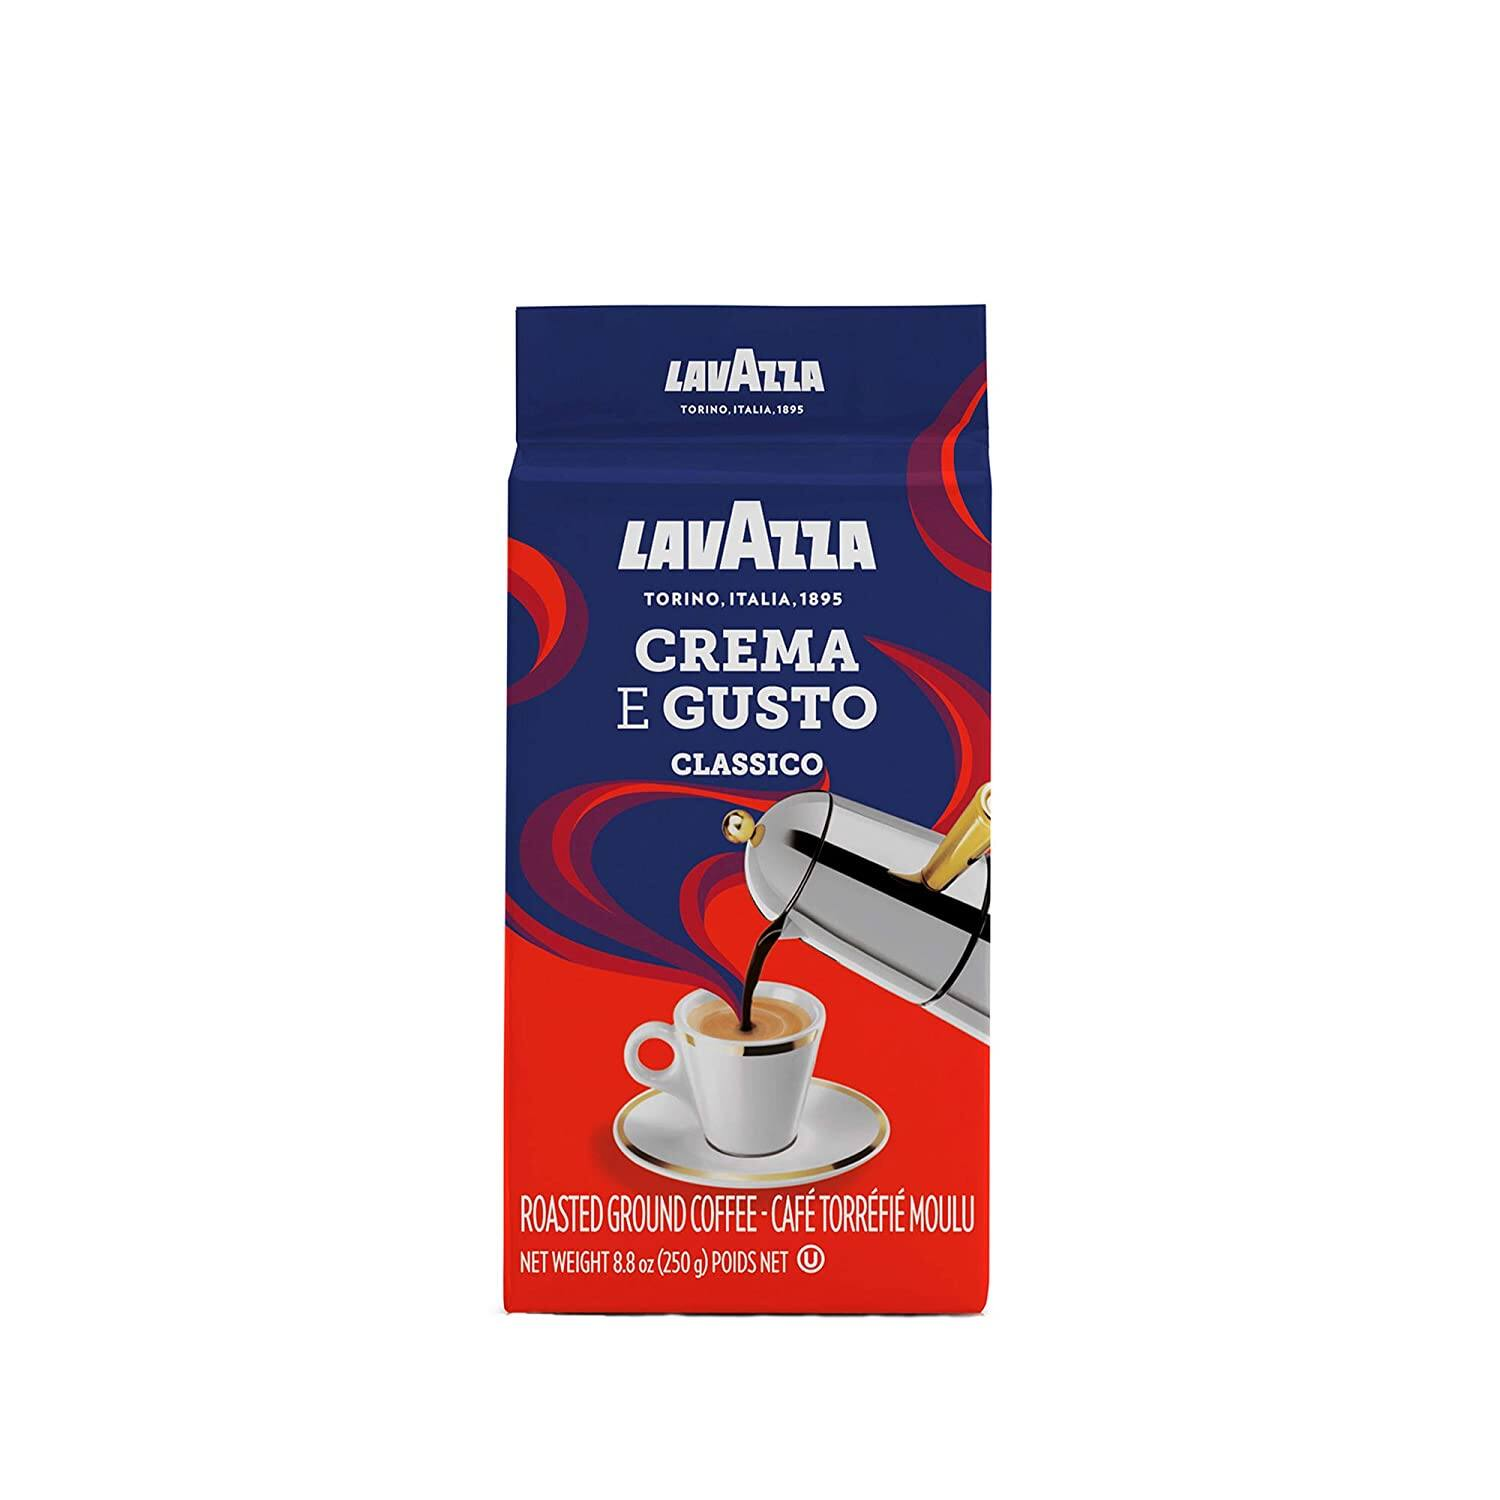 4-Pack 8.8oz. Lavazza Crema e Gusto Ground Coffee Blend (Espresso Dark Roast)